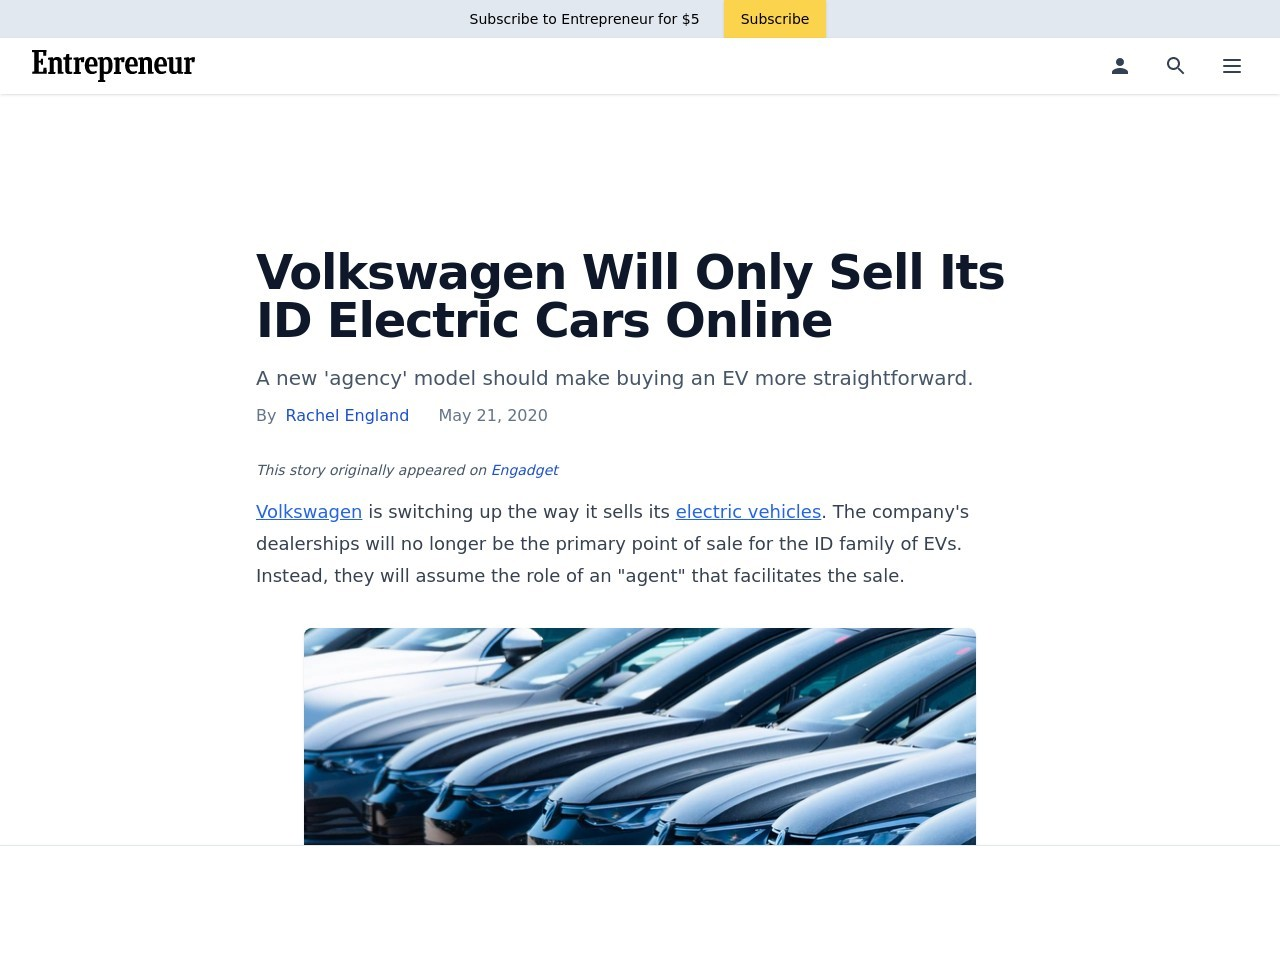 Volkswagen Will Only Sell Its ID Electric Cars Online